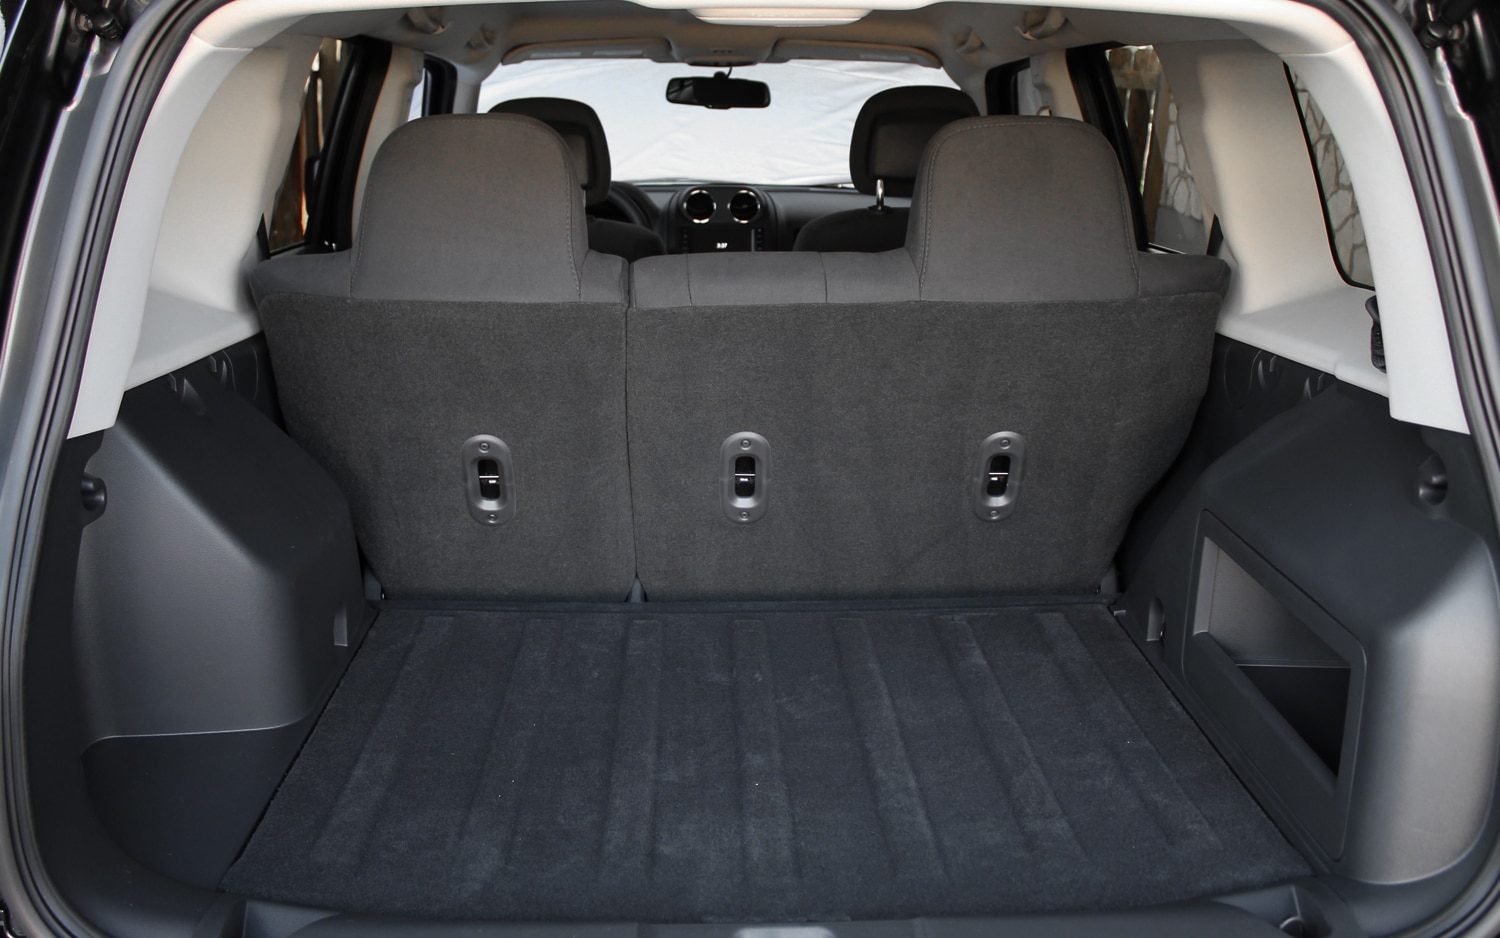 2013 Jeep Patriot Latitude 4X4 Rear Interior Cargo Space 02